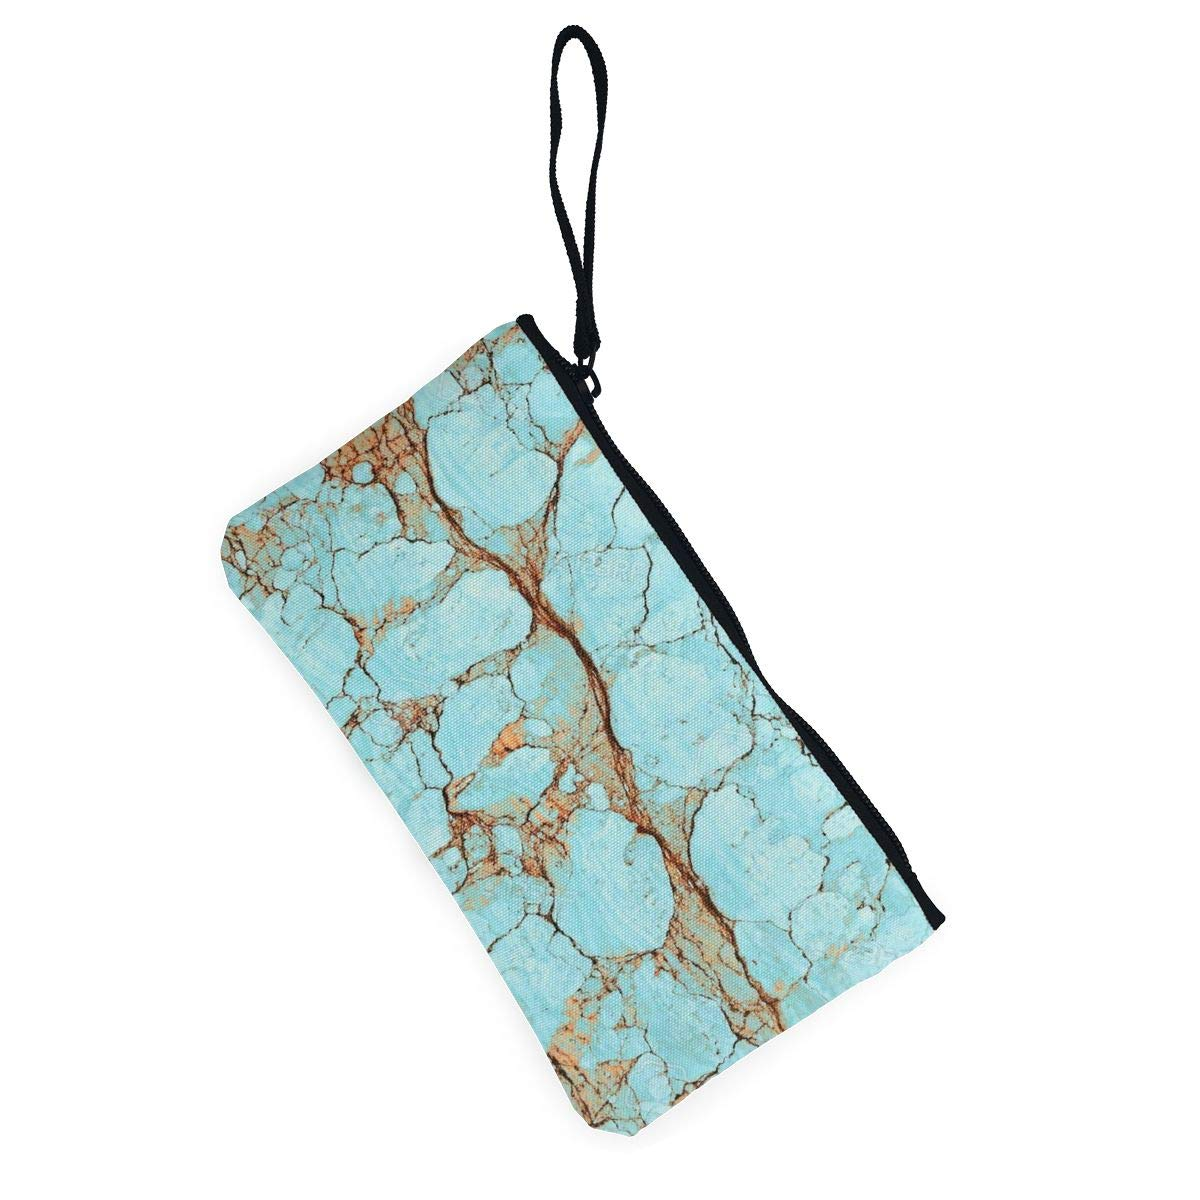 Rusty Cracked Turquoise Marble Womens Canvas Coin Purse Mini Change Wallet Pouch-Card Holder Phone Wallet Storage Bag,Pencil Pen Case